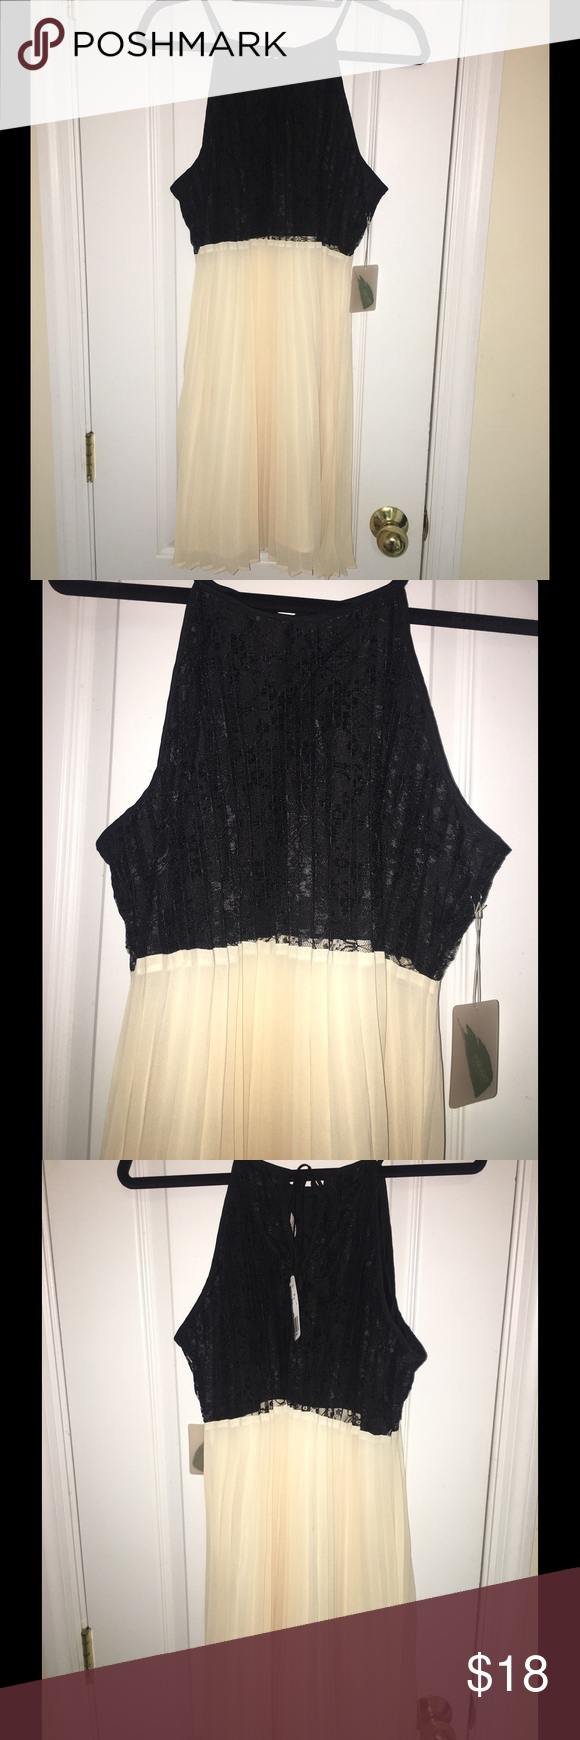 Dress🖤 Adorable black & cream dress, brand new with tags. Forever 21 Dresses Midi